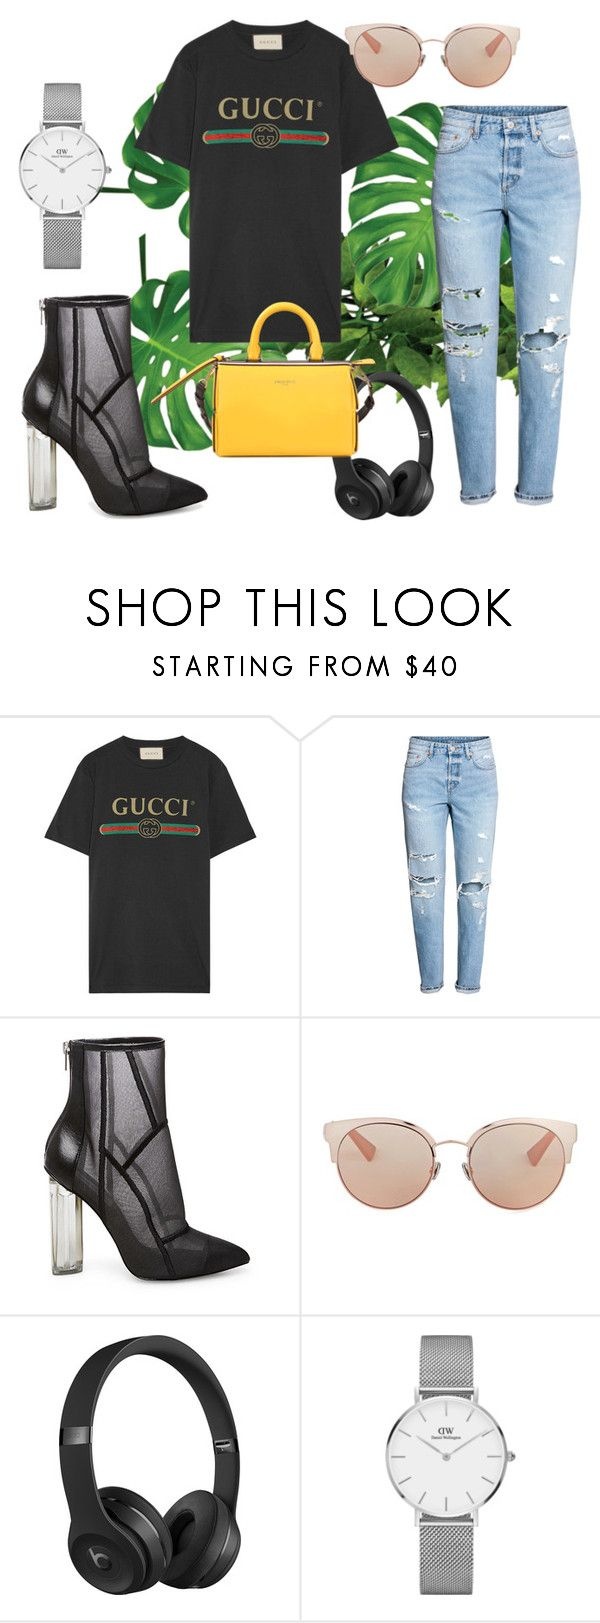 """""""Gucci"""" by juliesvankjaer on Polyvore featuring Gucci, Steve Madden, Christian Dior, Beats by Dr. Dre, Daniel Wellington and Emilio Pucci"""